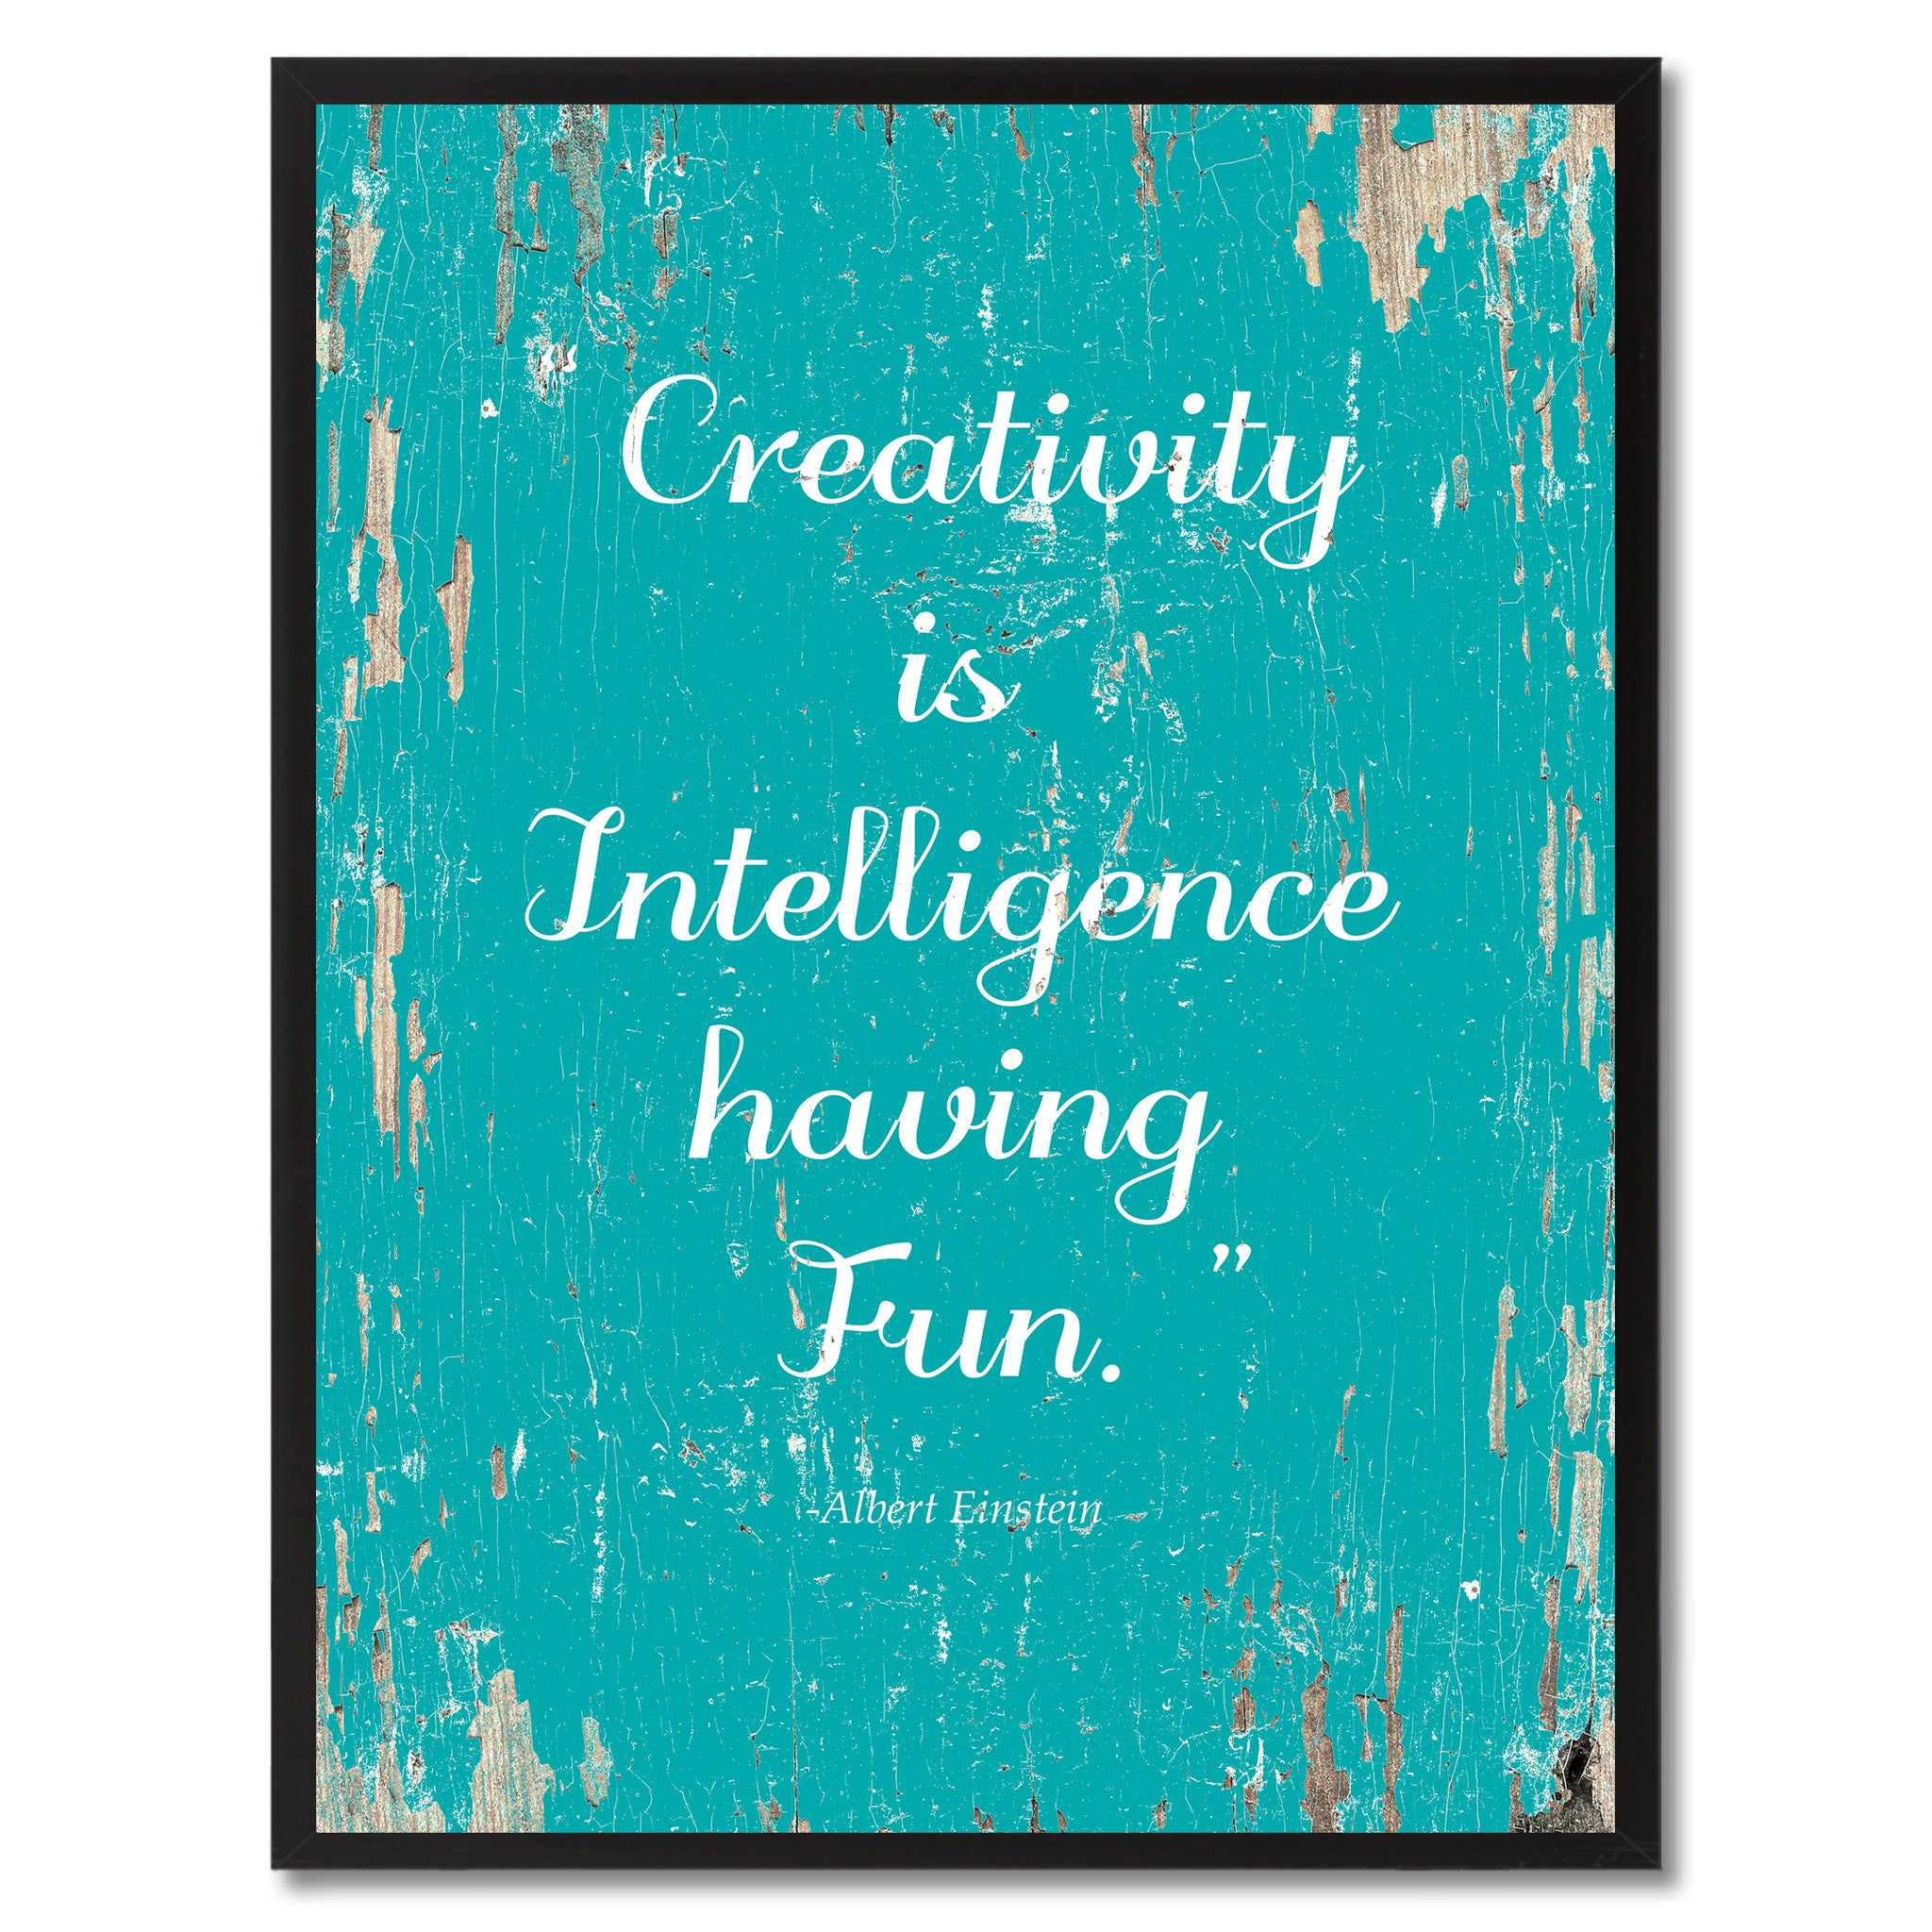 Creativity Is Intelligence Having Fun Albert Einstein Saying Motivation Quote Canvas Print, Black Picture Frame Home Decor Wall Art Gifts